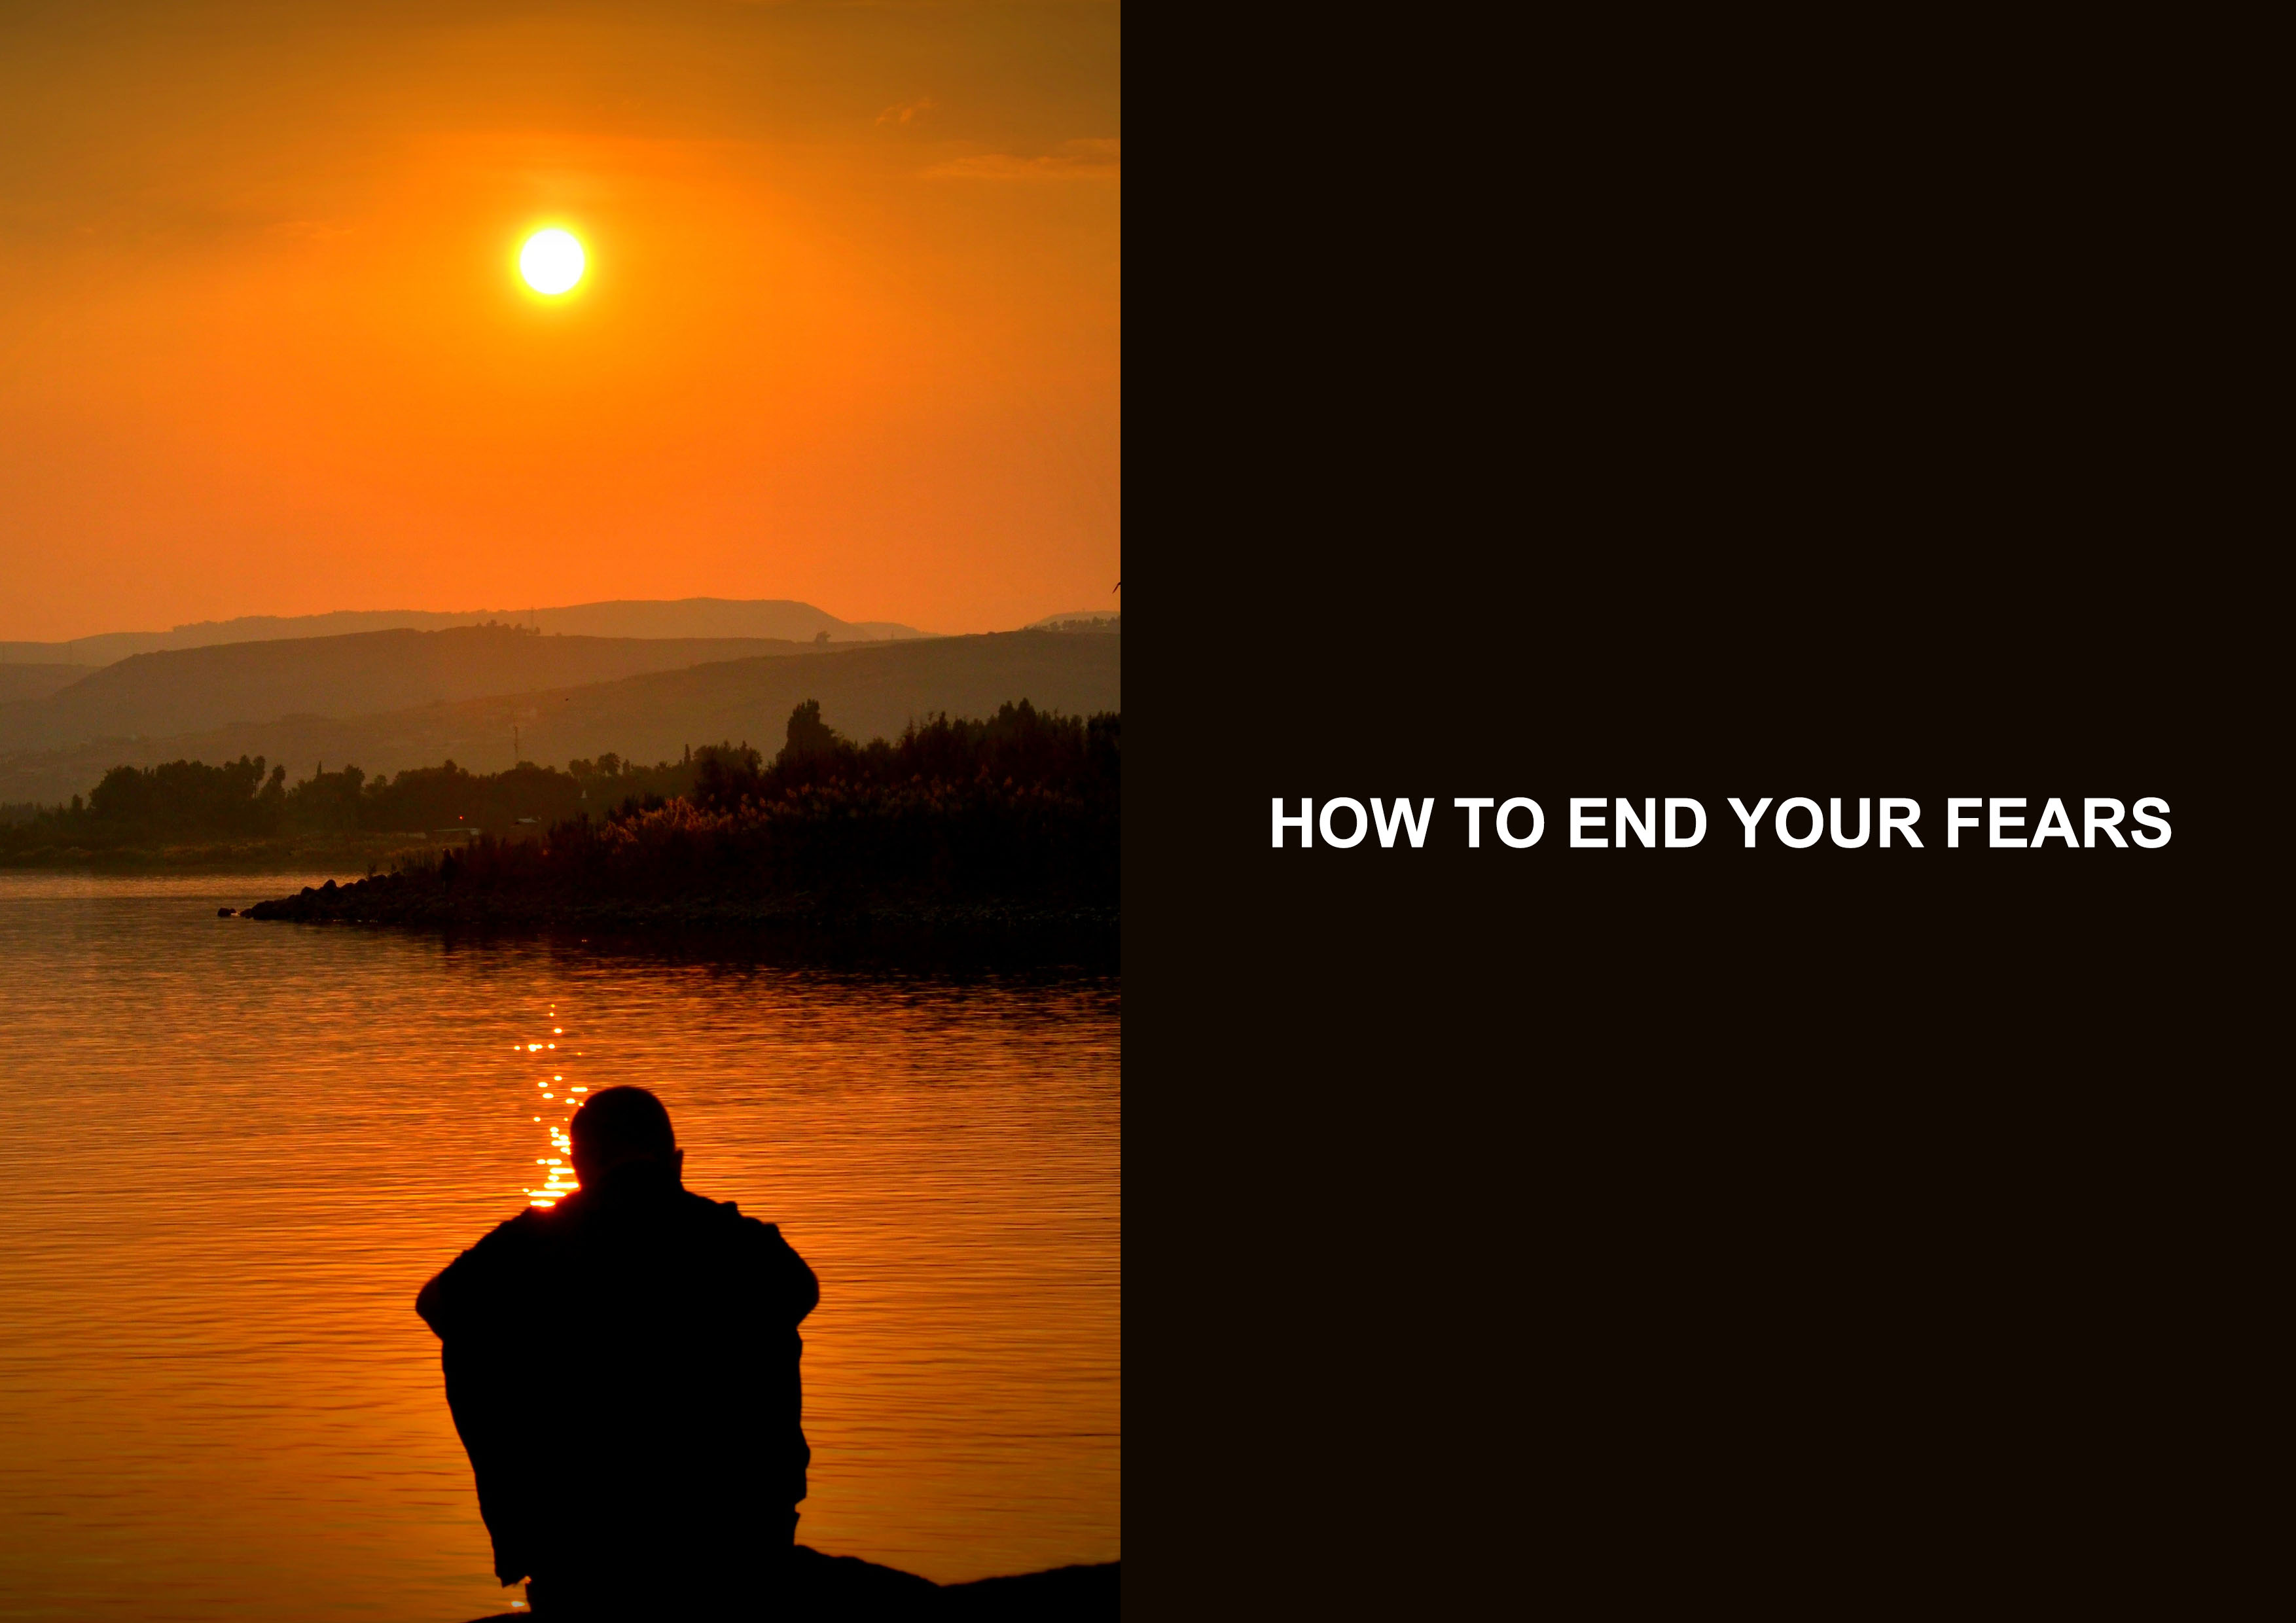 How To End Your Fears